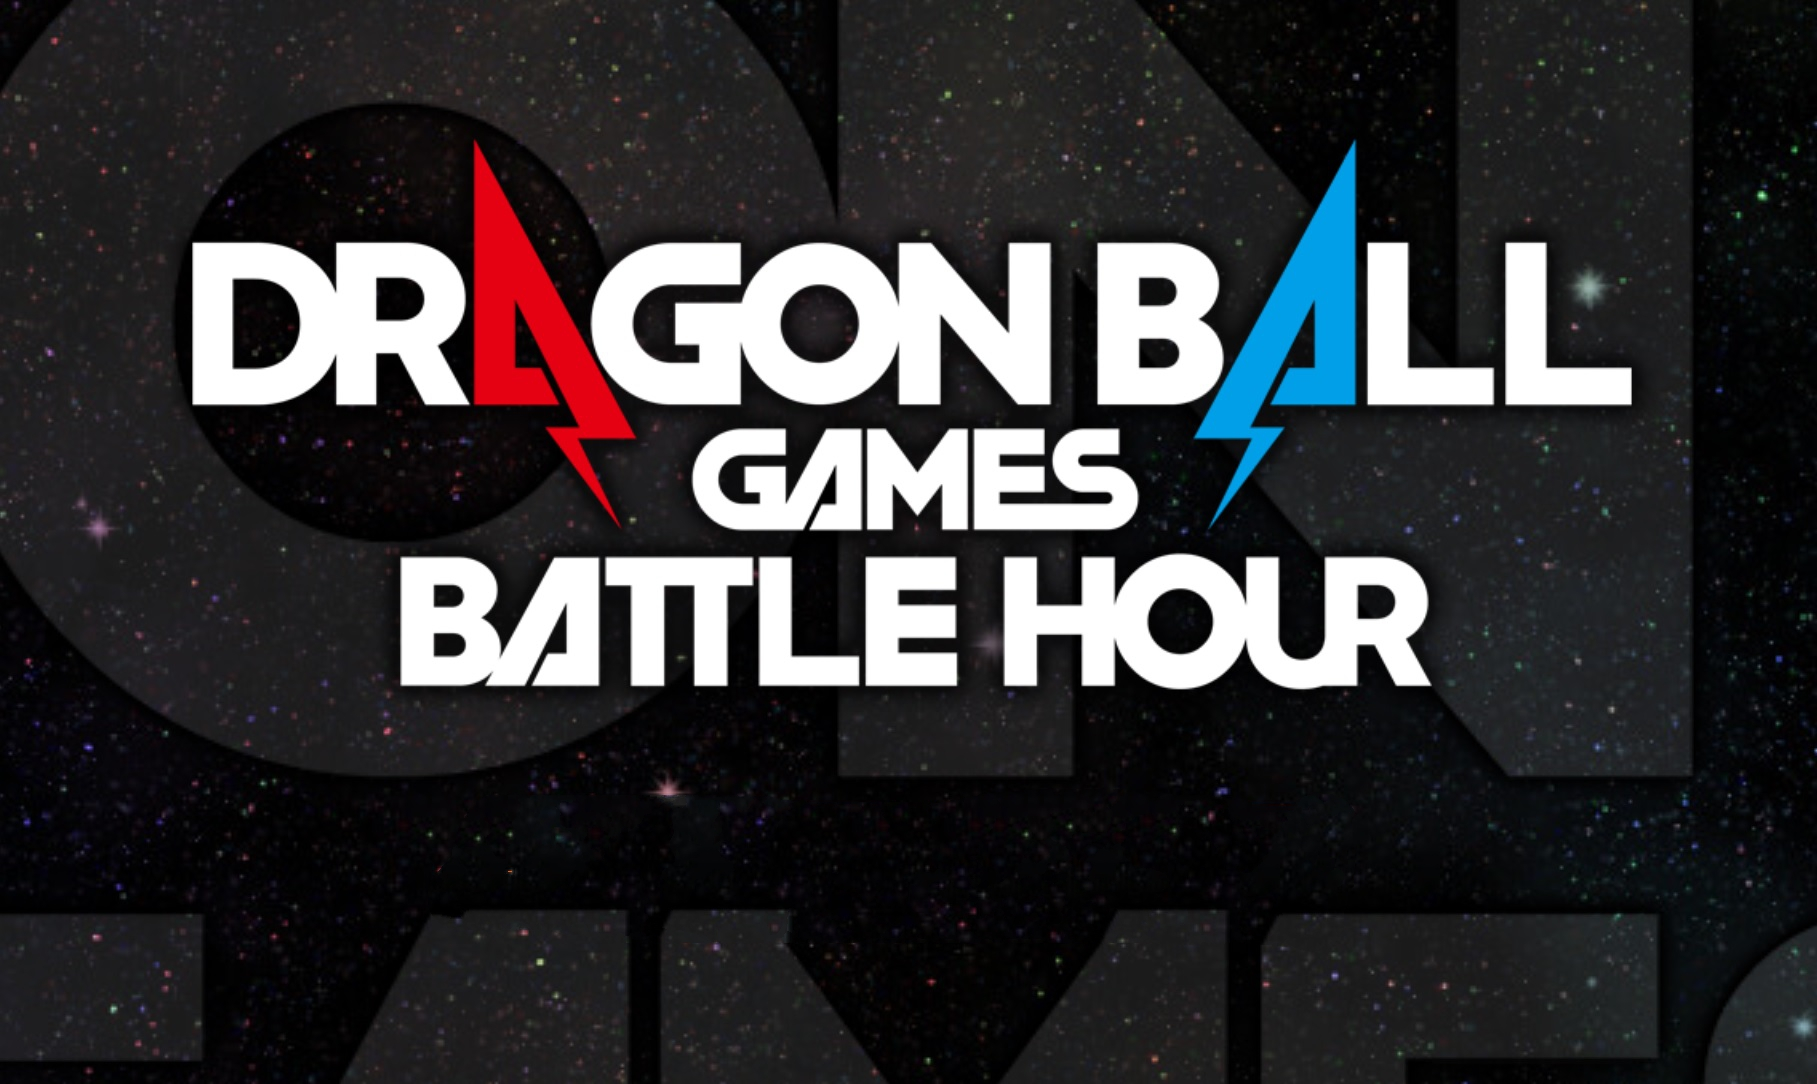 DRAGON BALL GAMES BATTLE HOUR | ECCO IL RIASSUNTO